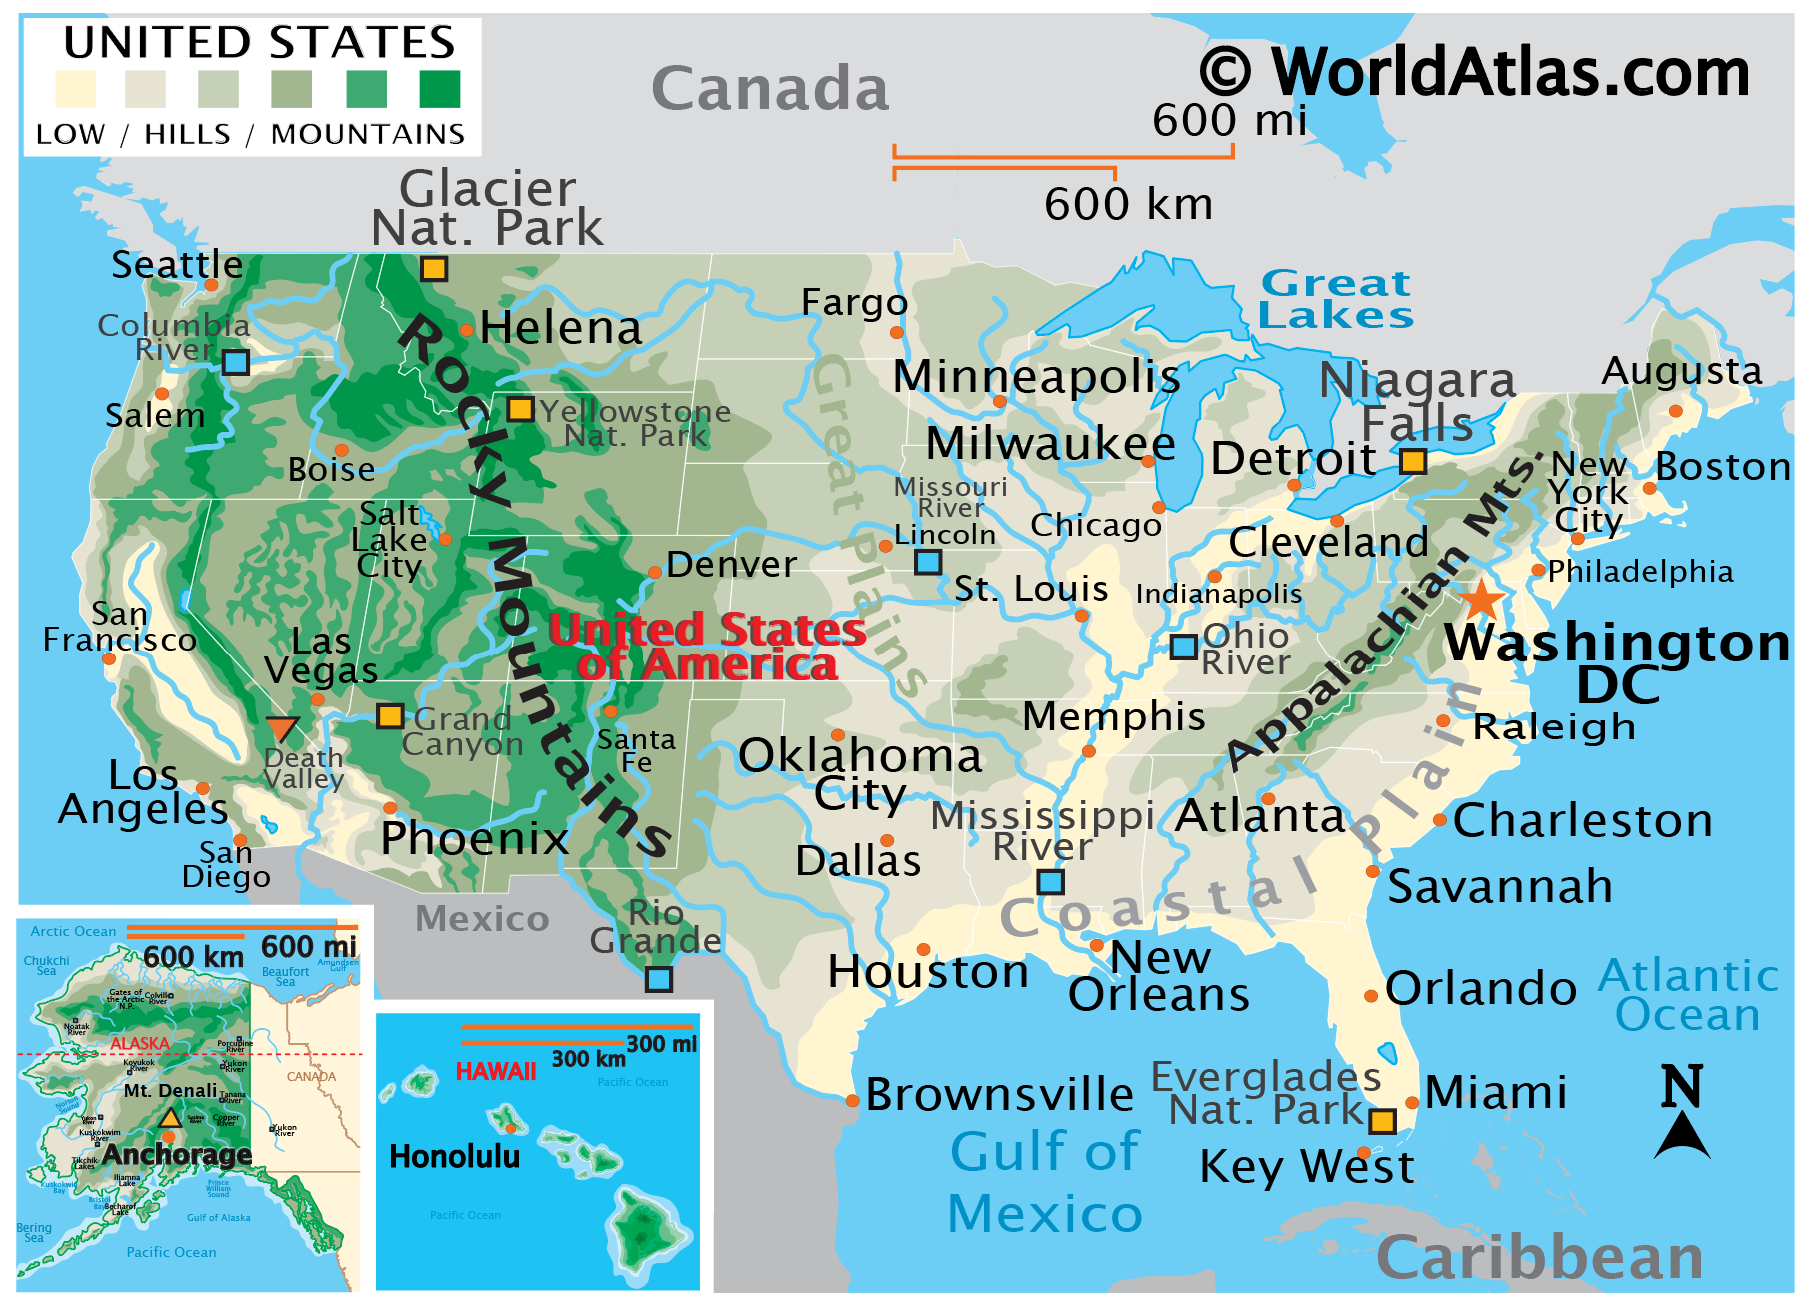 map of united states atlas United States Map   World Atlas